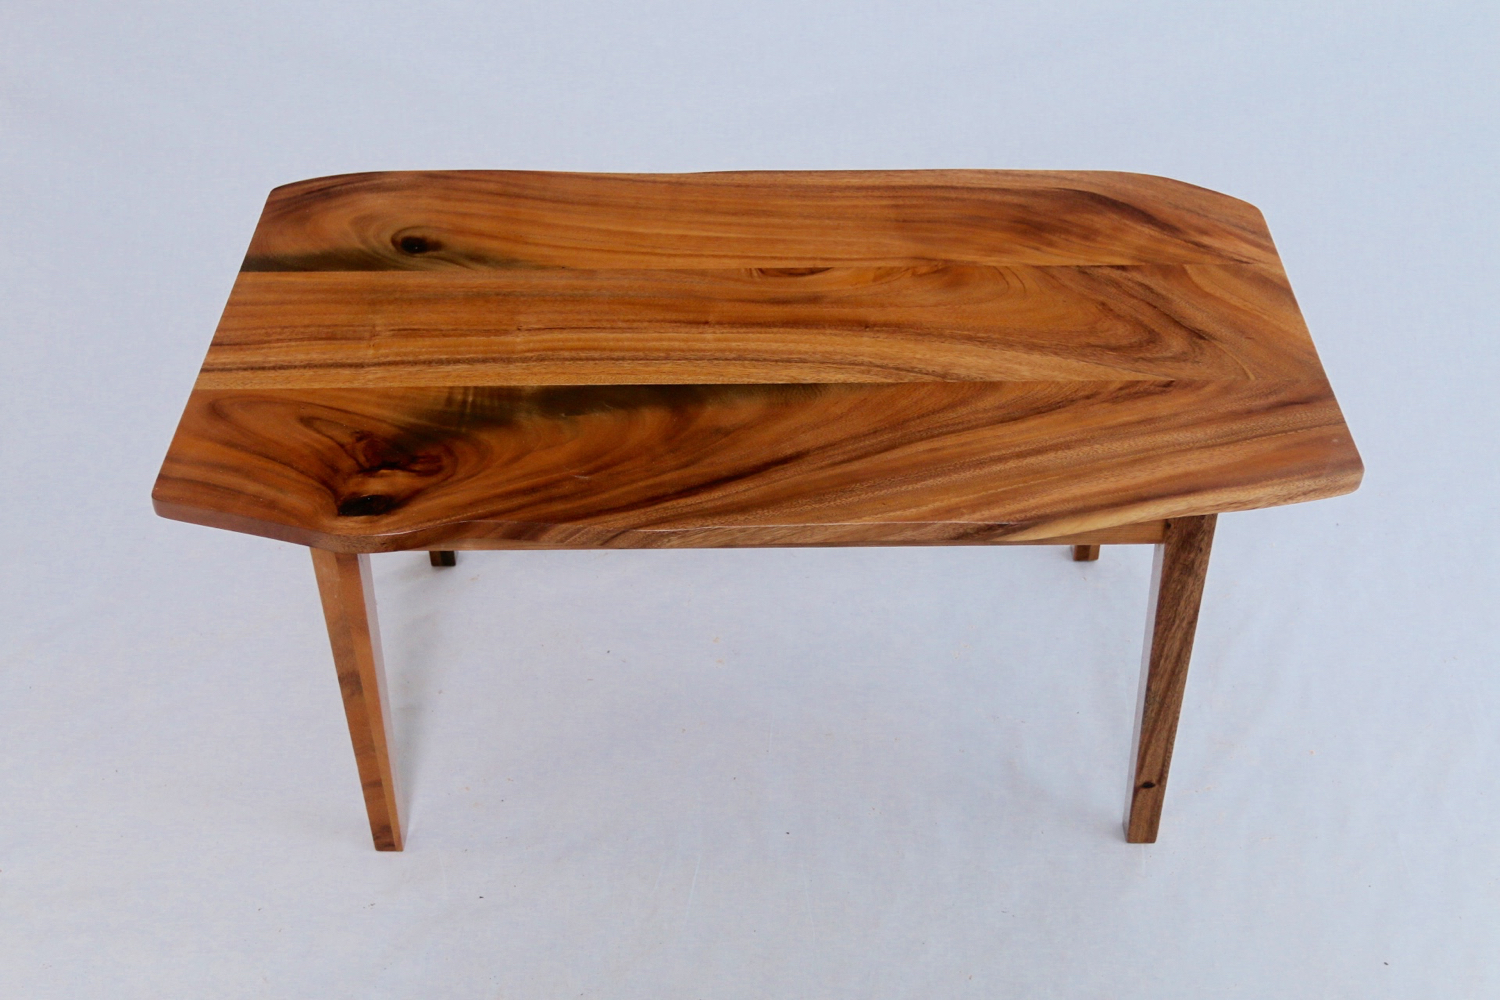 Classic simple monkeypod coffee table. Hint at a natural edge and slim tapered legs.